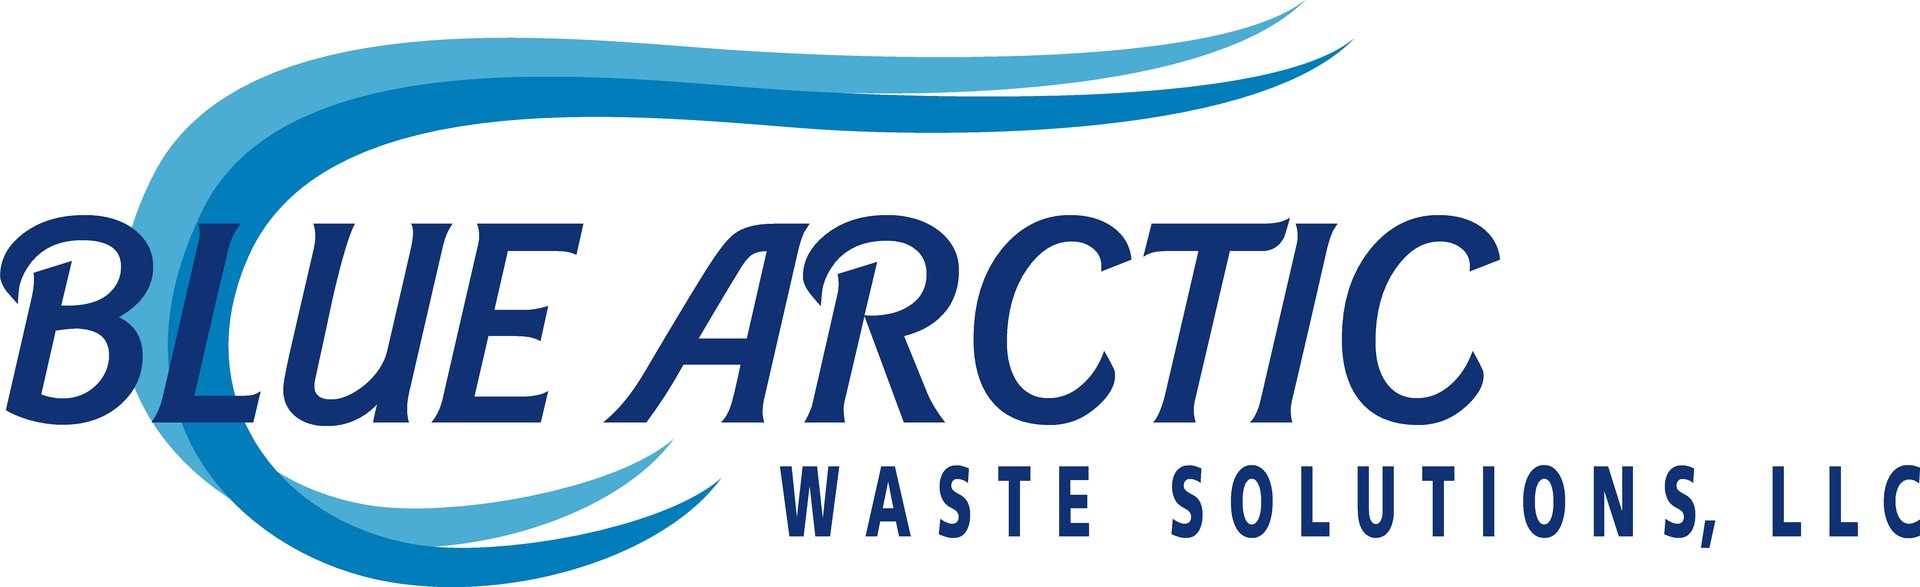 Blue Arctic Waste